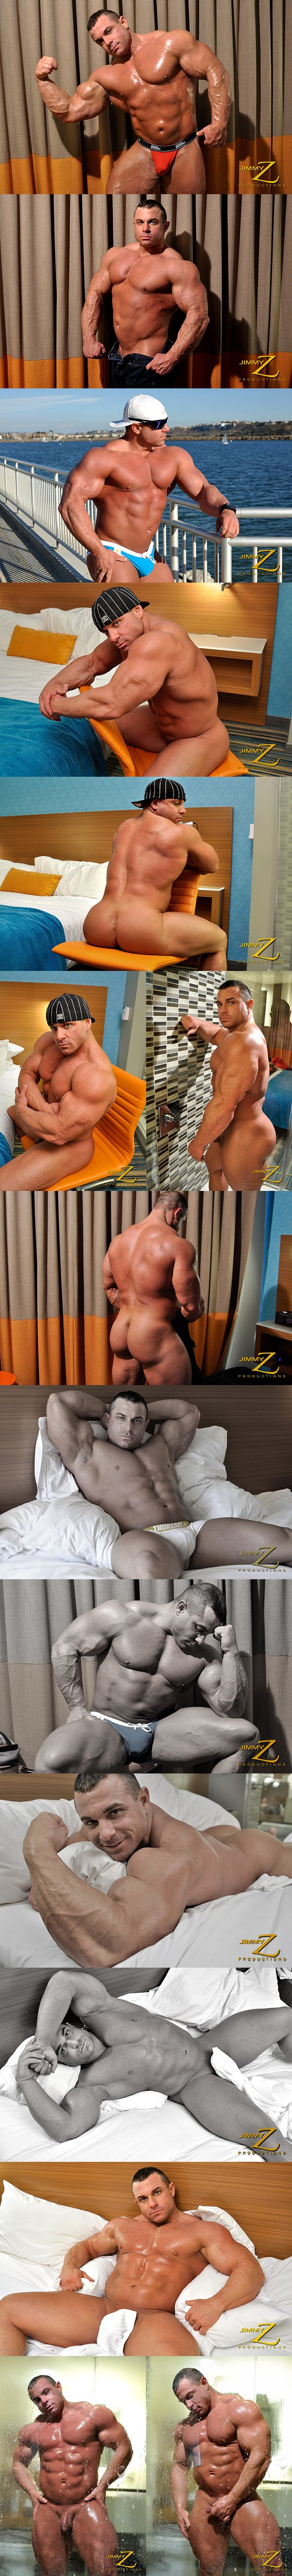 Hot bodybuilder Chaz Ryan shows off his hard muscles and strokes his cock in An Invited Voyeur Part 2 at Jimmyzproductions 01